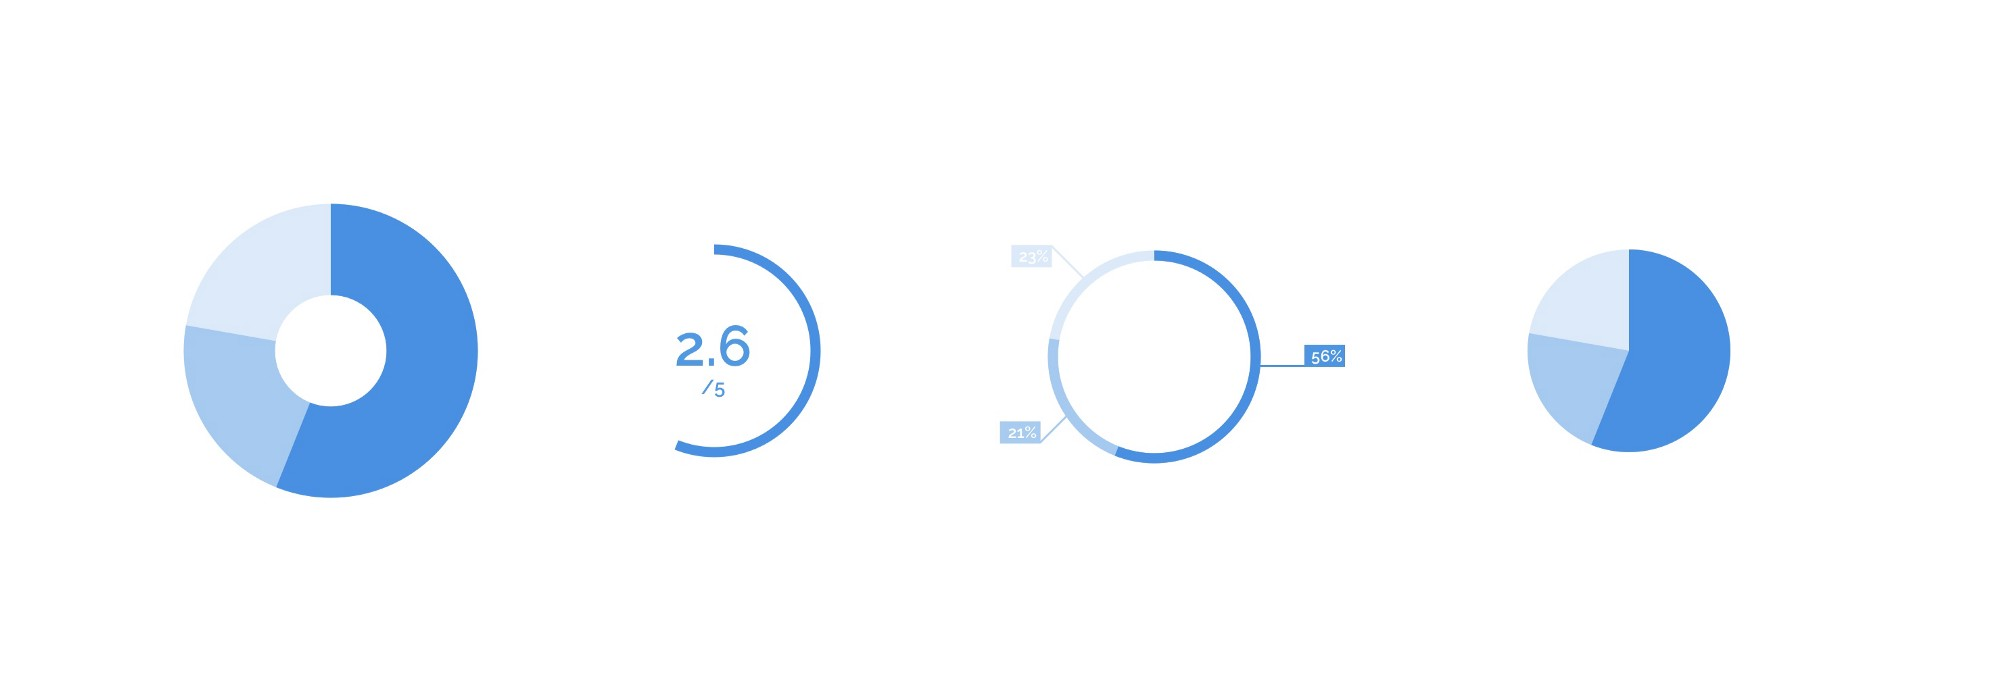 3 easy steps to create percentage circles and pie charts in sketch ccuart Images